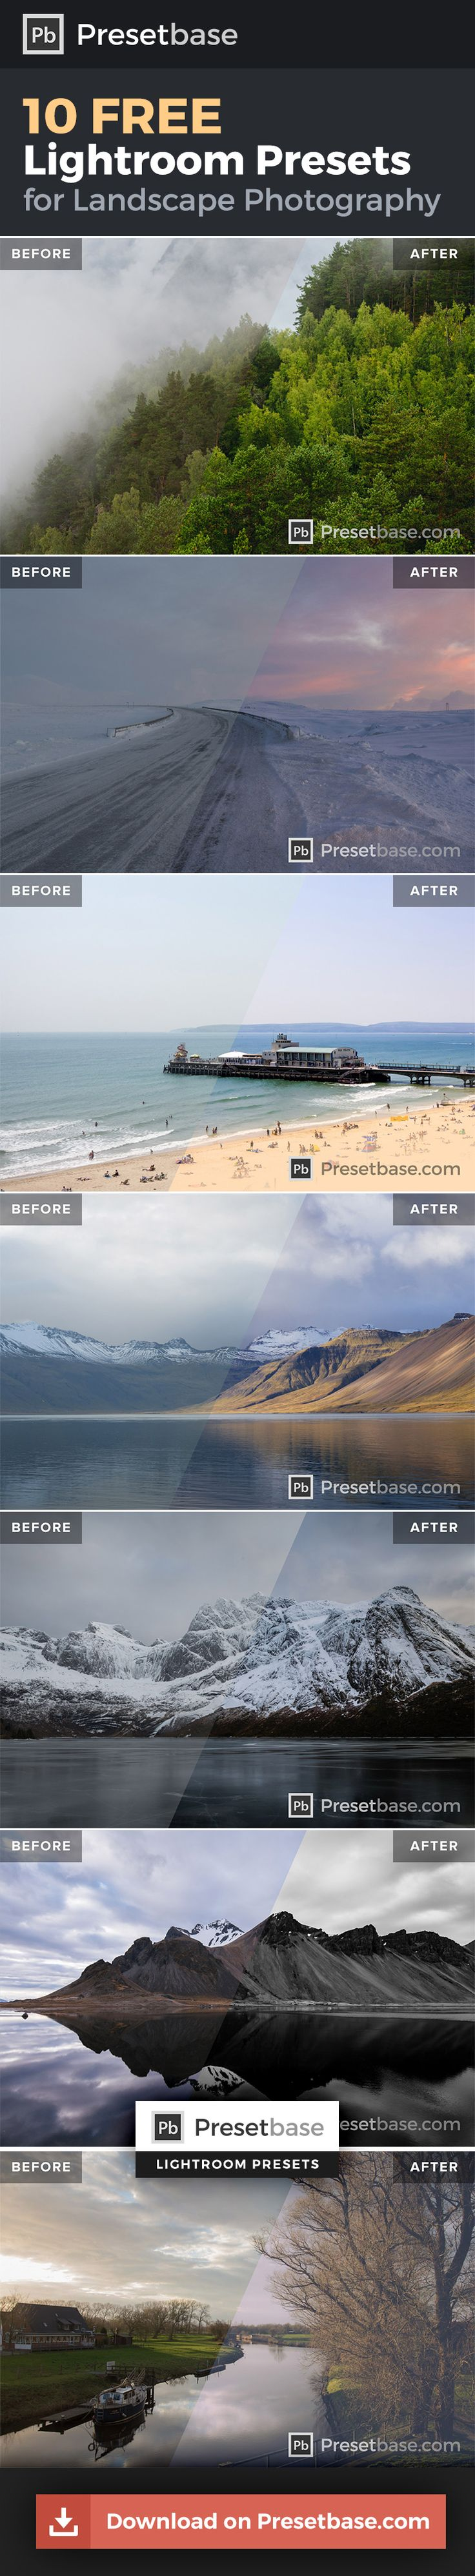 10 FREE Lightroom Presets for Landscape Photography by @presetbase / Download all samples and see how these presets will save you a lot of time editing your photos in Lightroom!